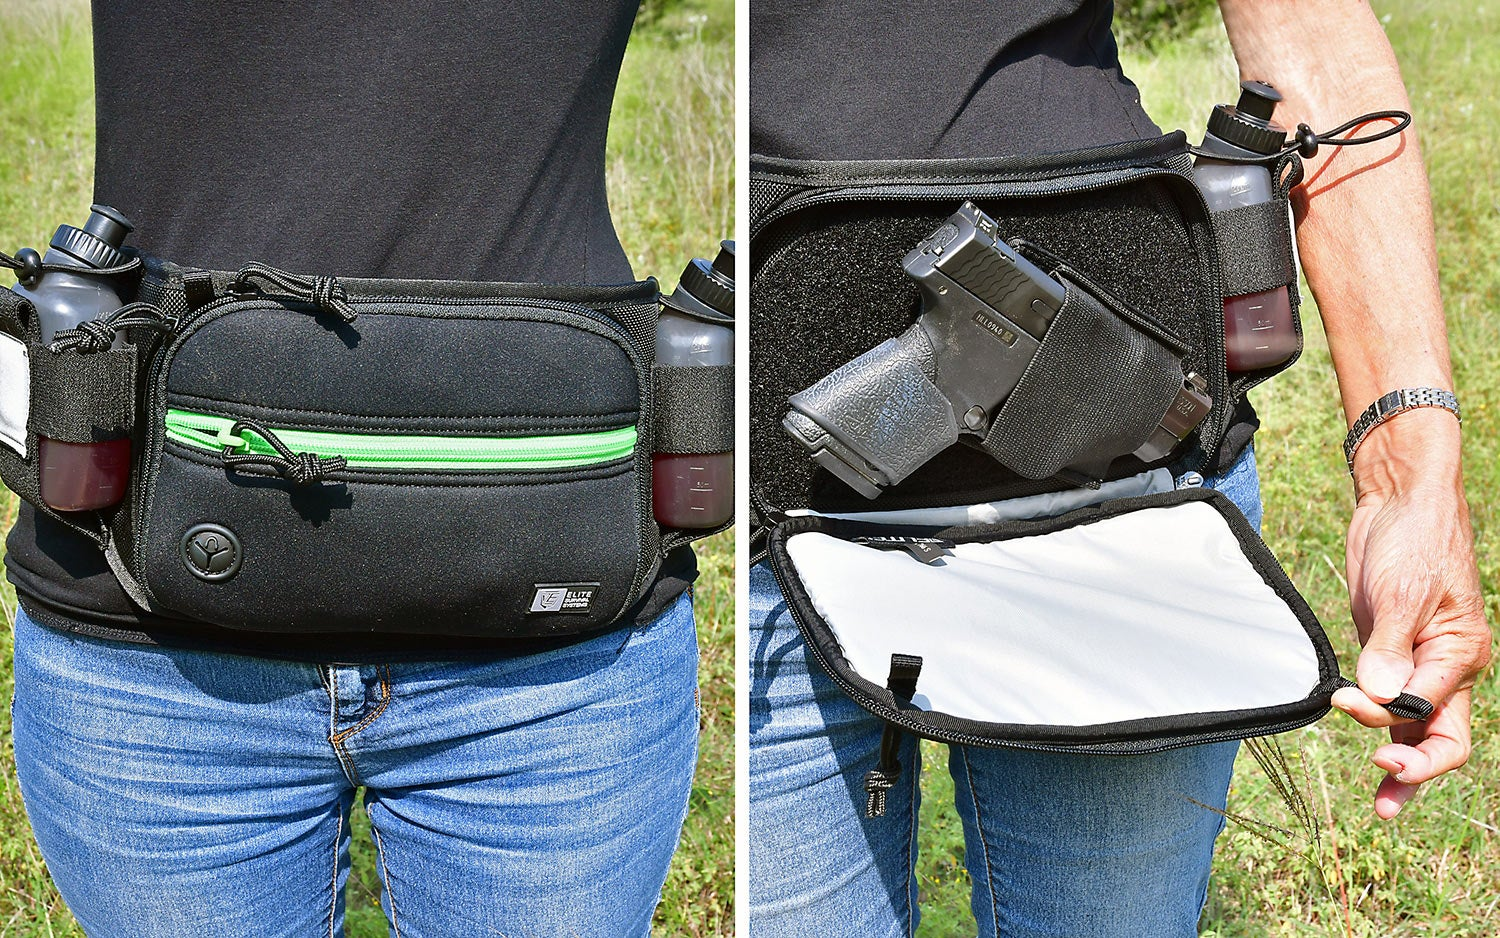 A black and green waist pack worn by a man, showing it open and closed.